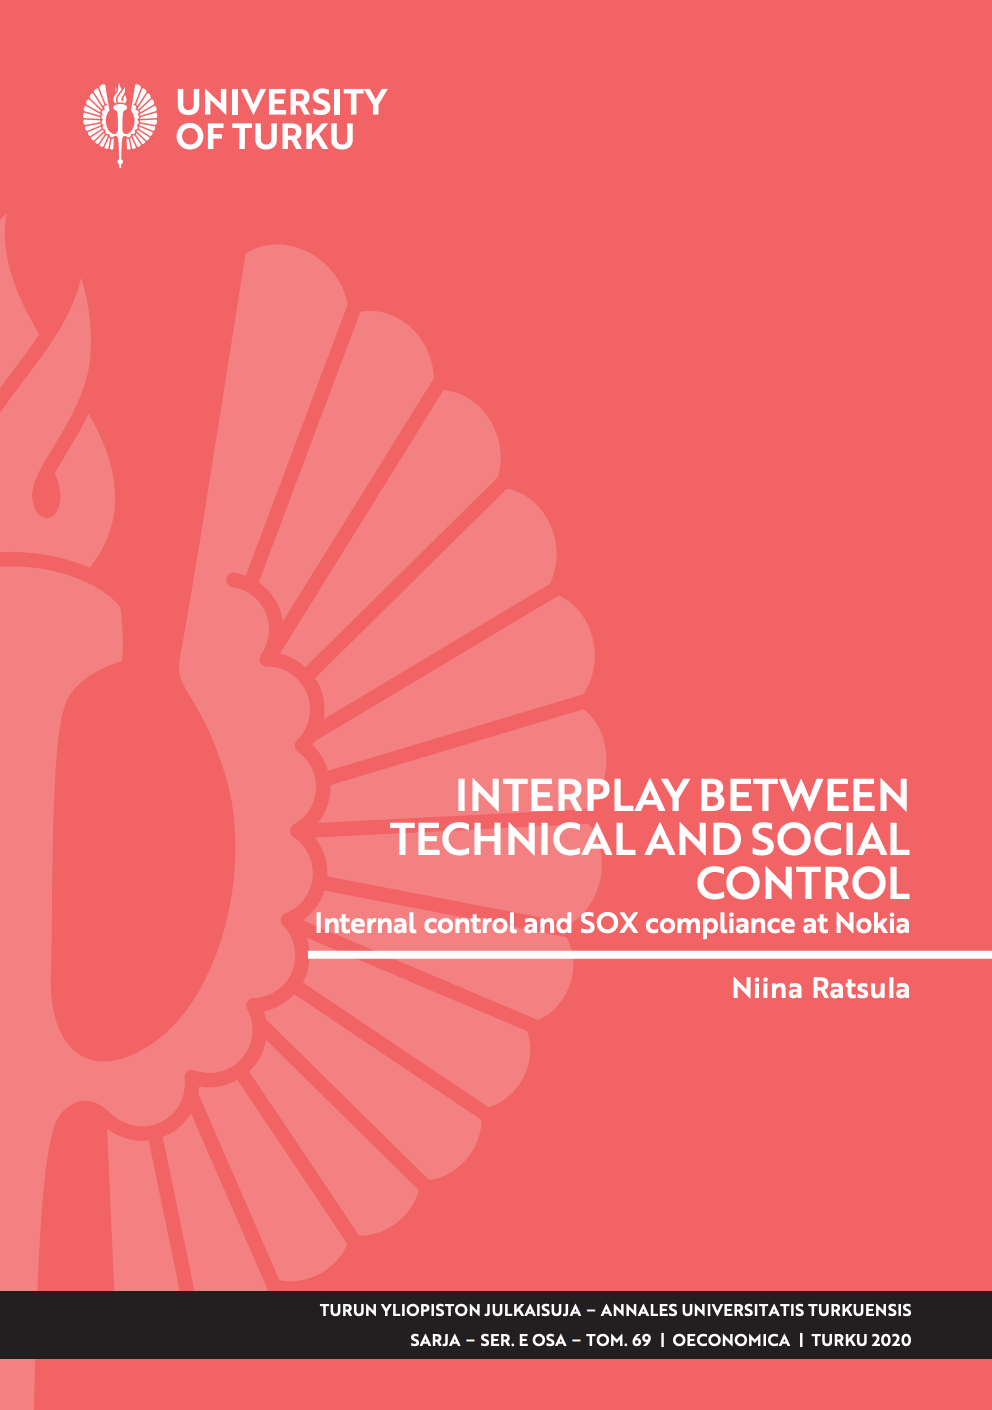 Interplay between technical and social control : Internal control and SOX compliance at Nokia